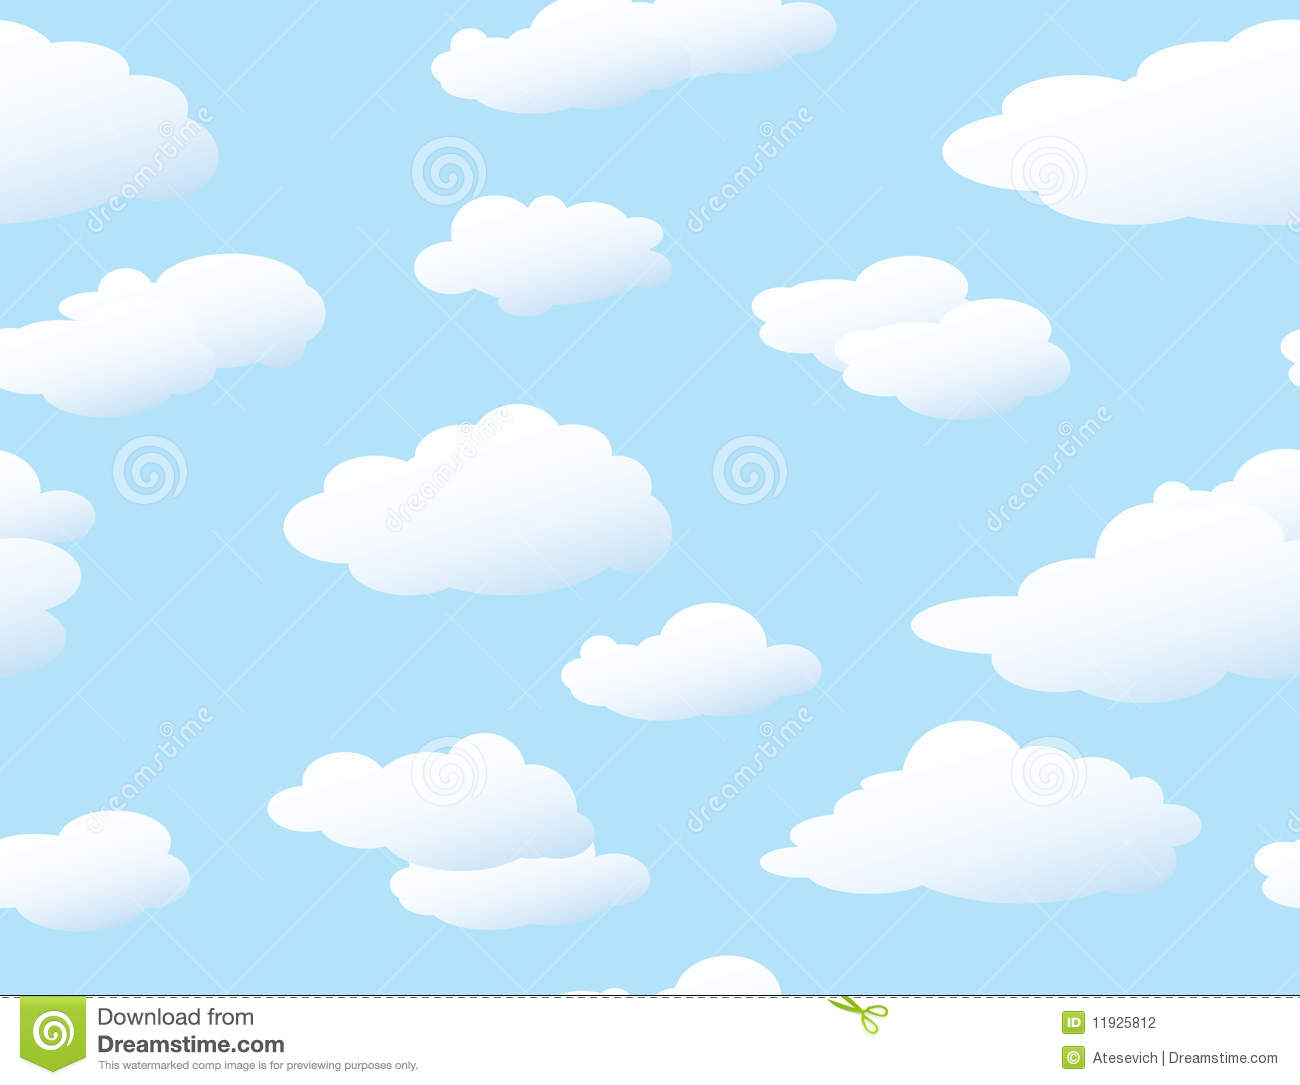 Seamless Cloud Background Royalty Free Stock Image Image 5989806 in Clouds Background Clipart